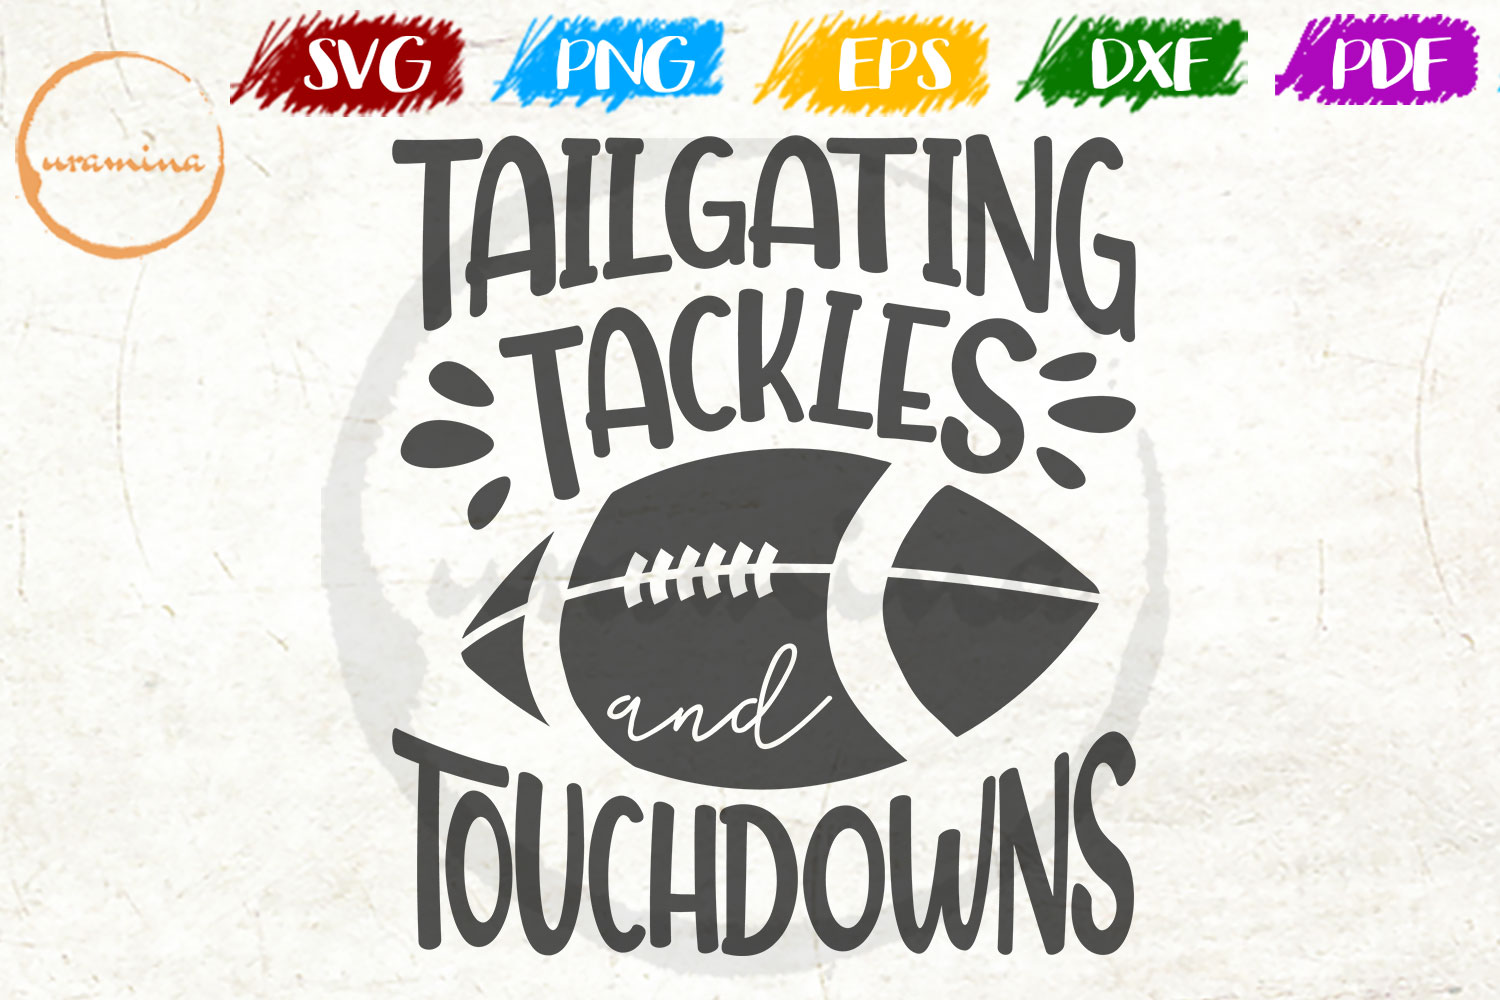 Download Free Tailgating Tackles And Touchdowns Graphic By Uramina Creative for Cricut Explore, Silhouette and other cutting machines.